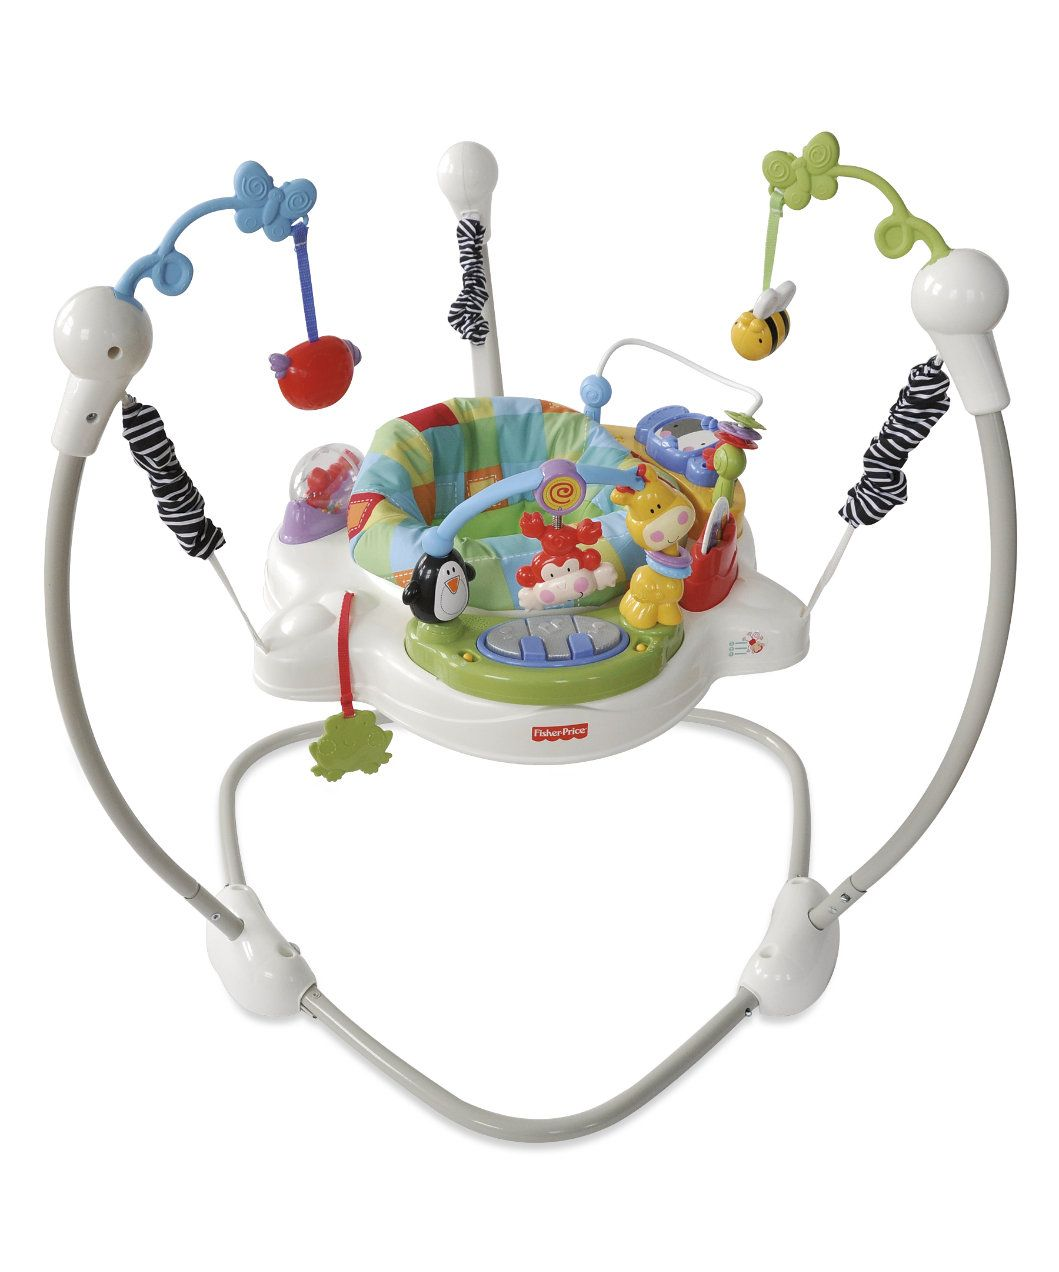 e3920c8a3 Fisher Price Discover  n Grow Jumperoo - baby walkers   pull along ...